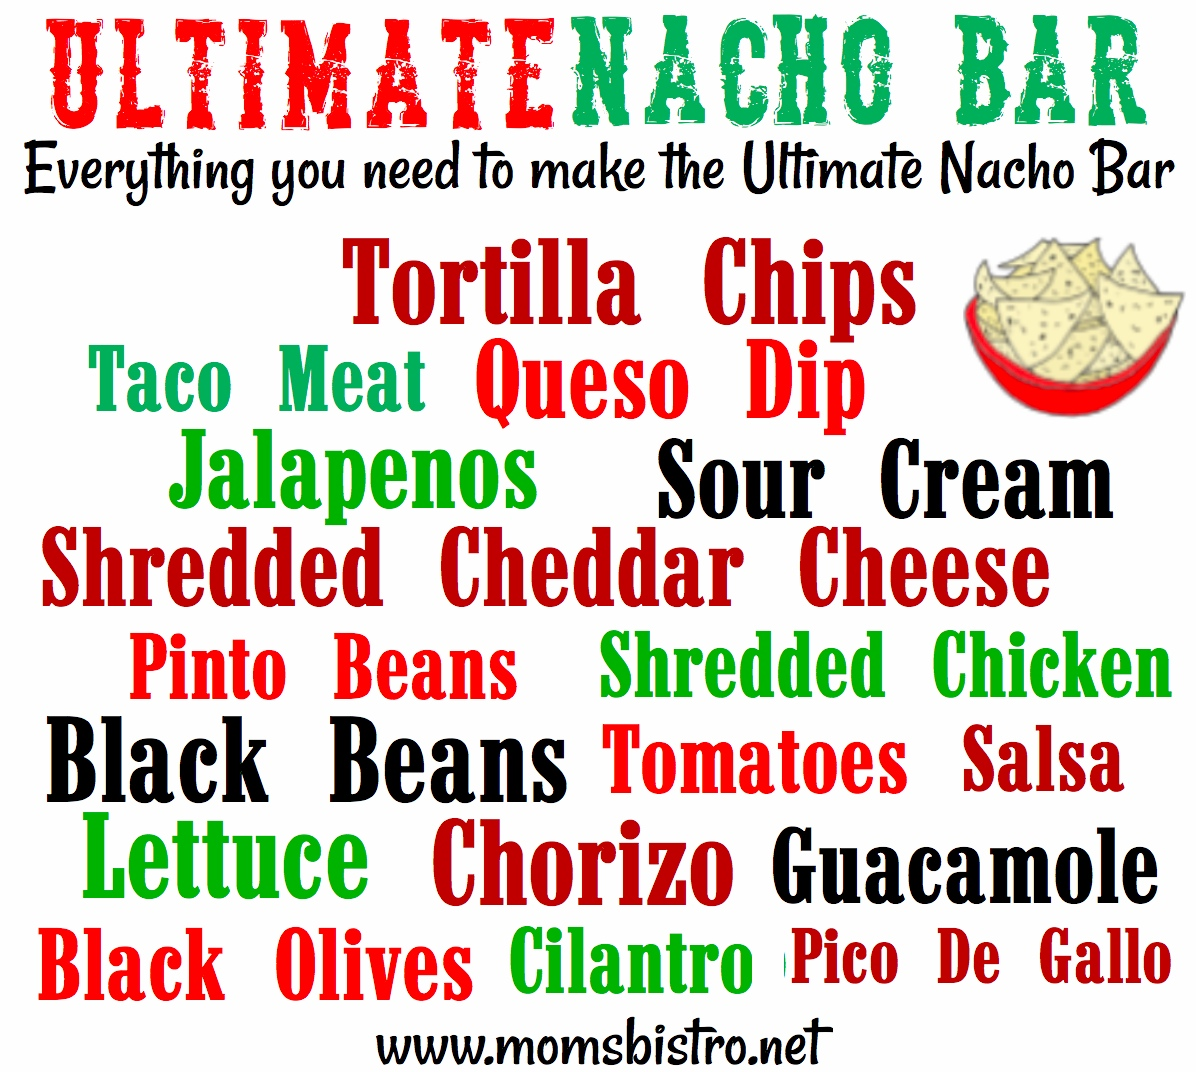 Ultimate Nacho Bar